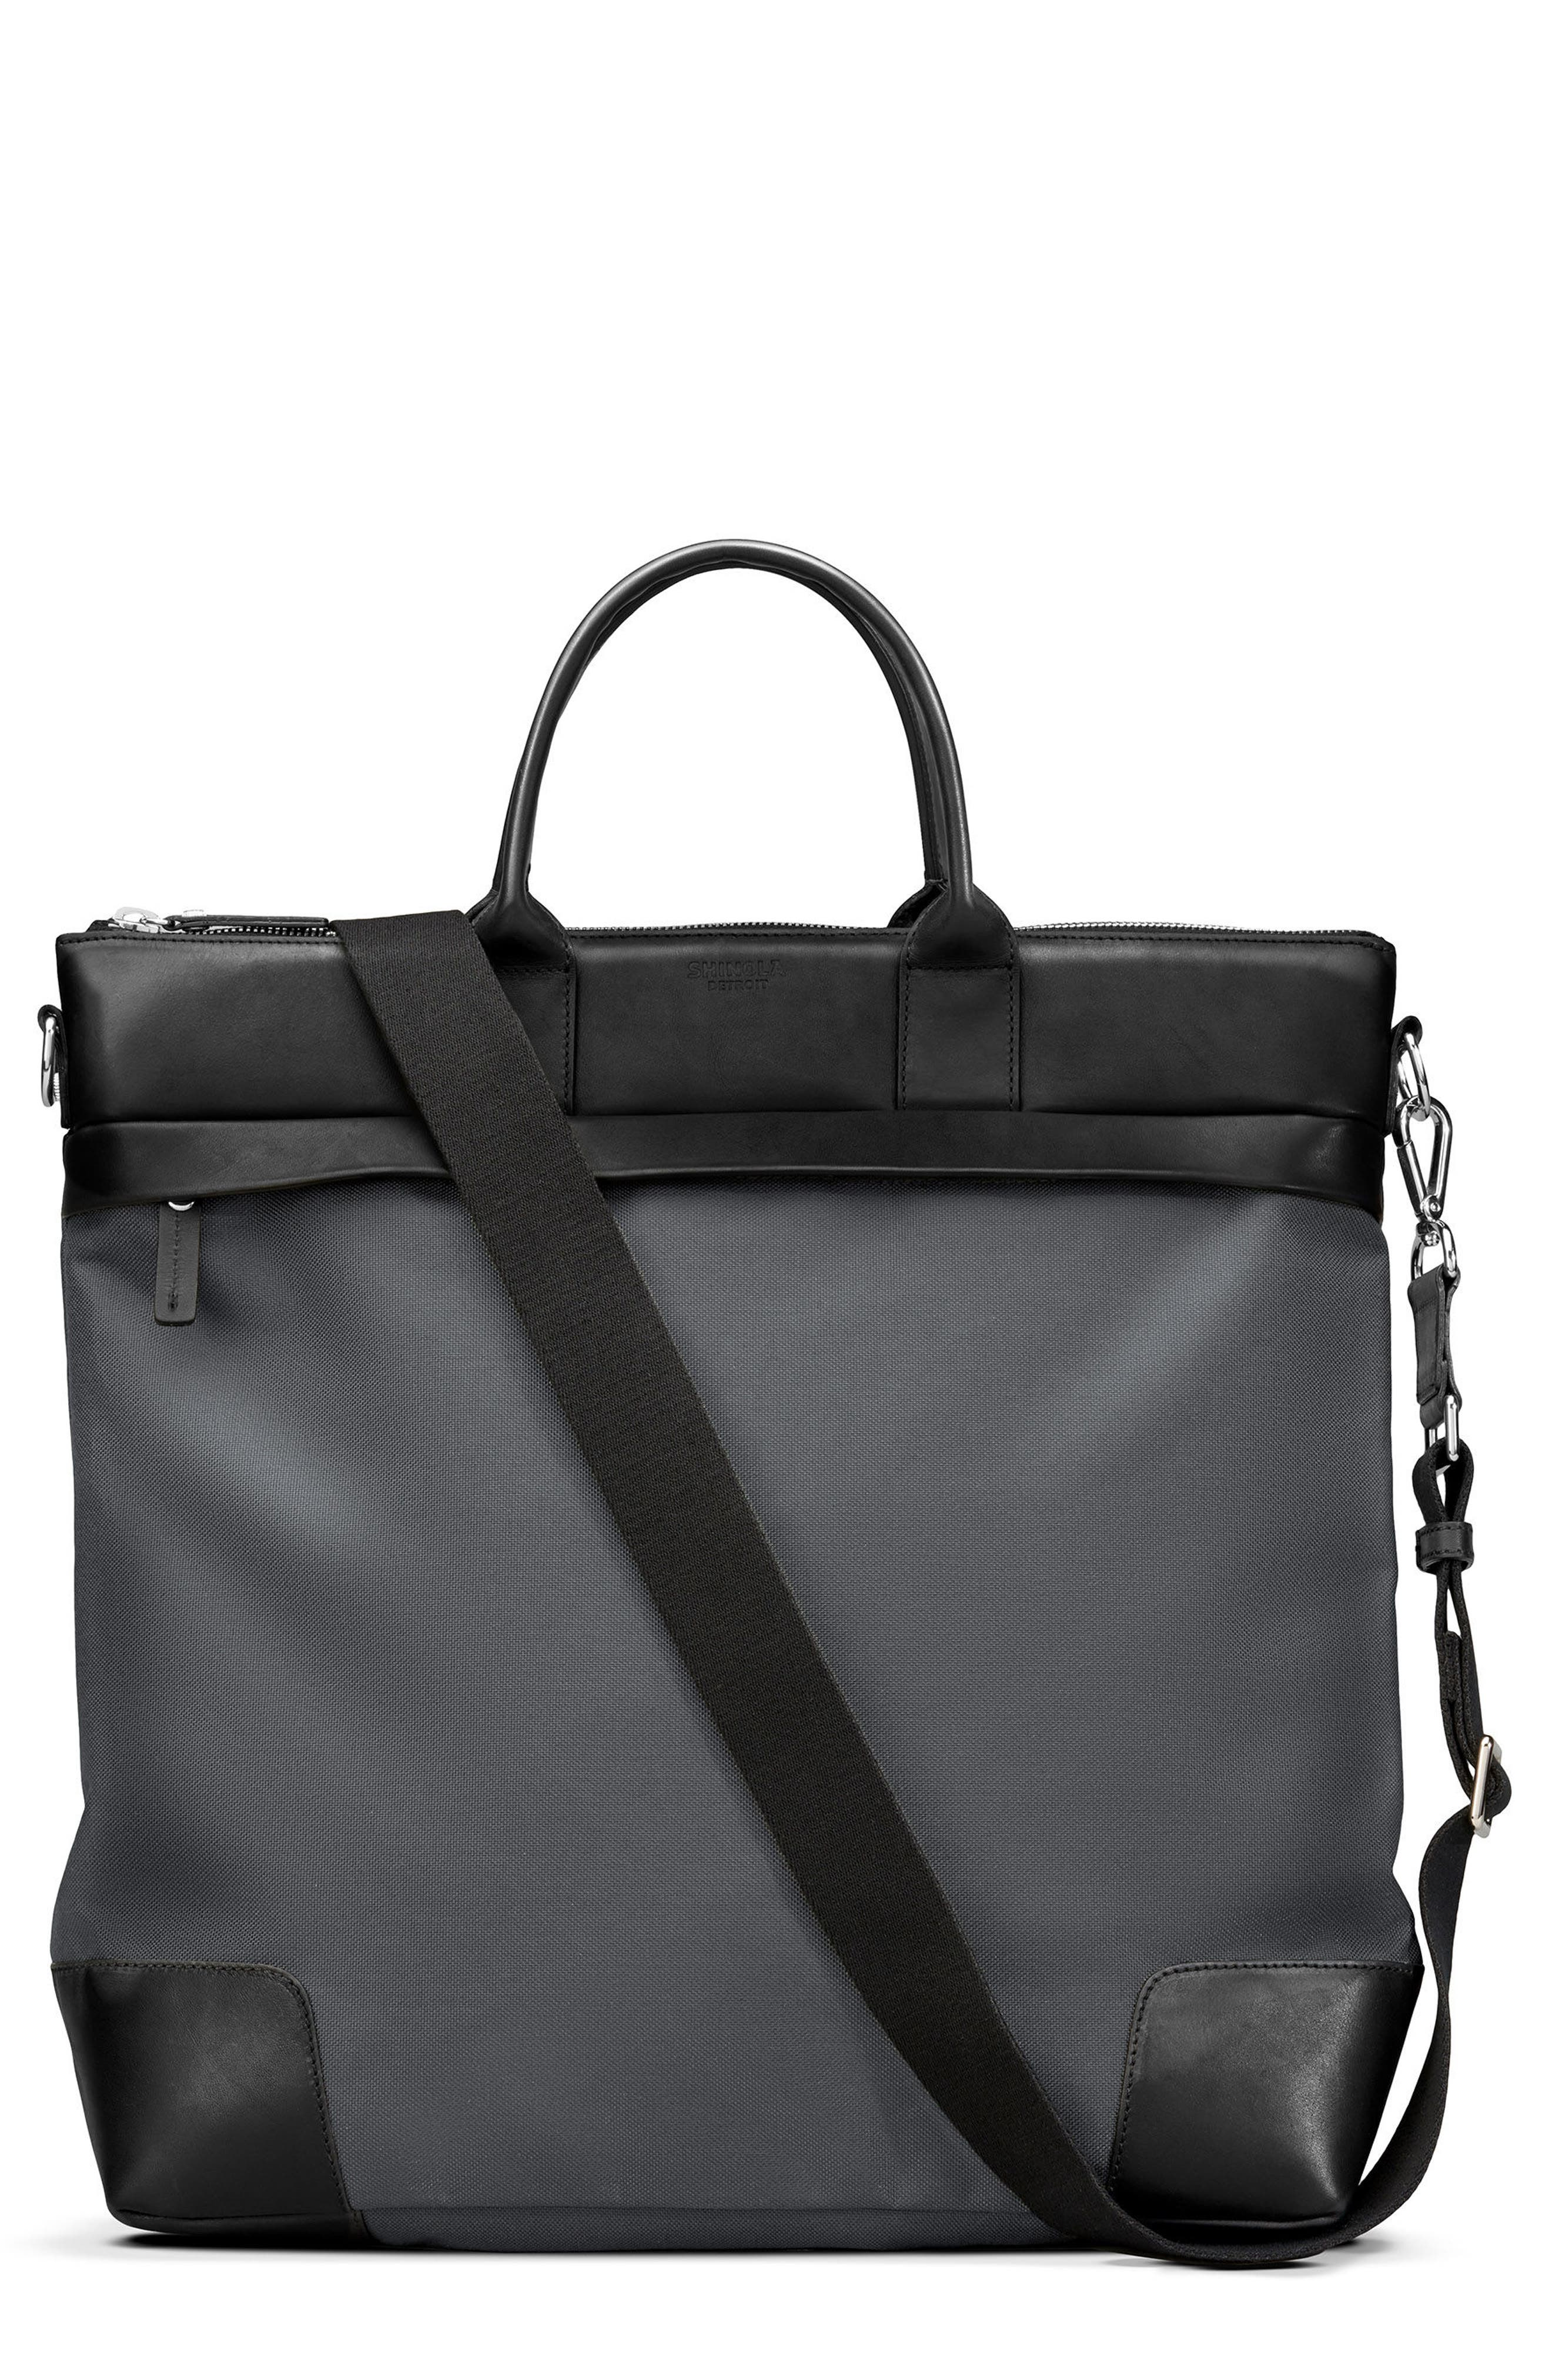 Shinola Tote Bag